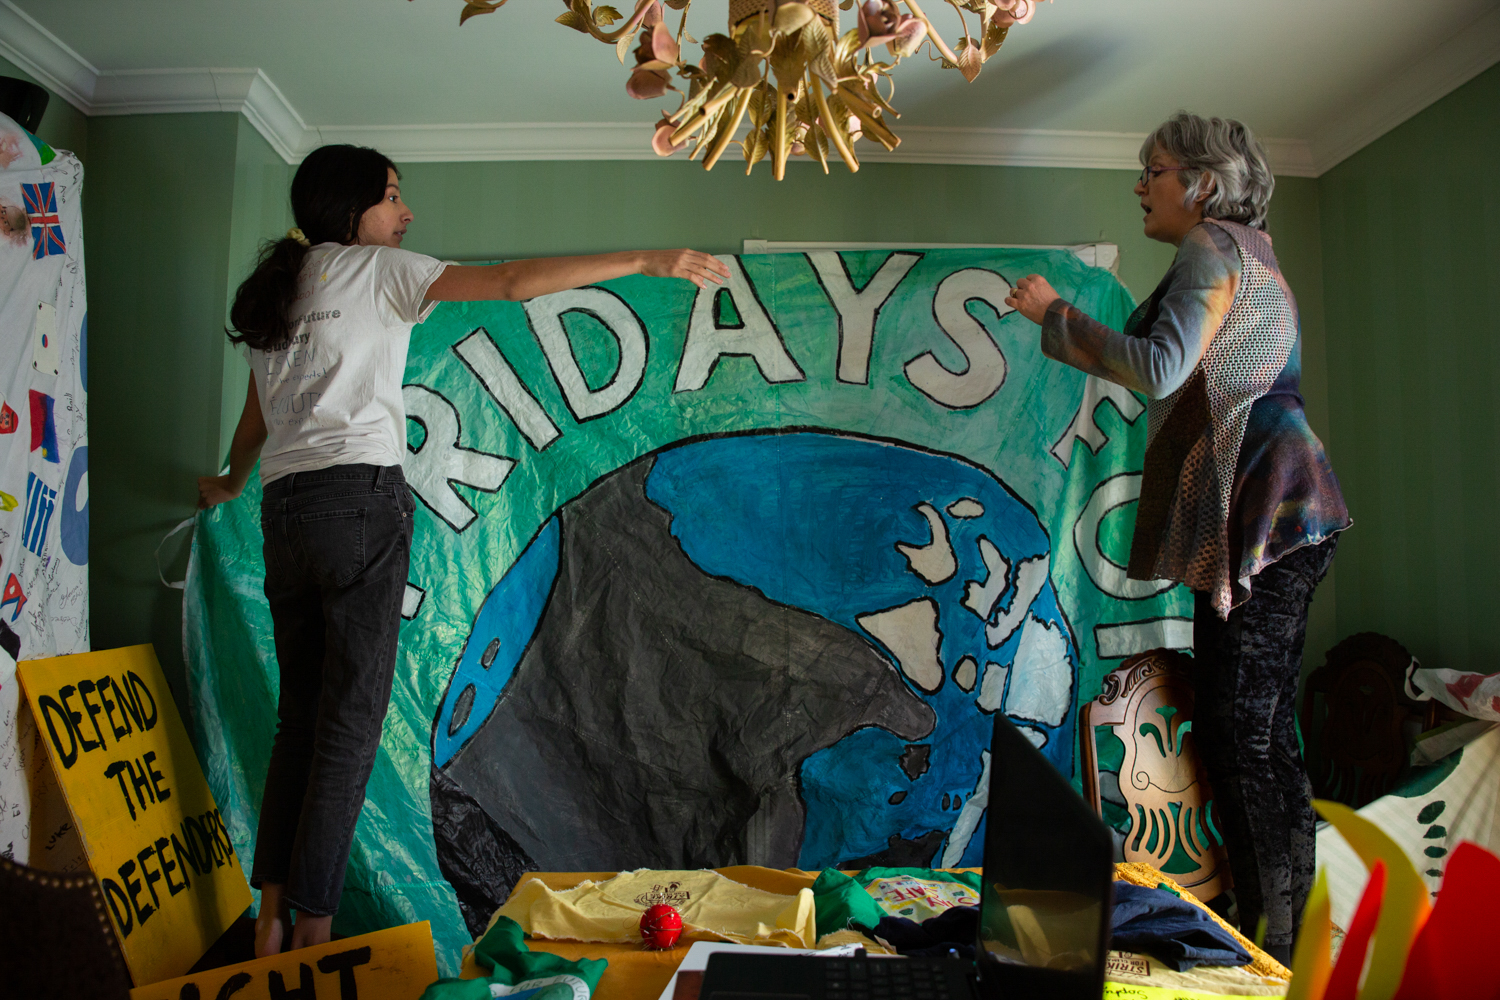 Orlando helps her daughter decorate their living room ahead of the Earth Day event (Photograph by Vanessa Tignanelli)